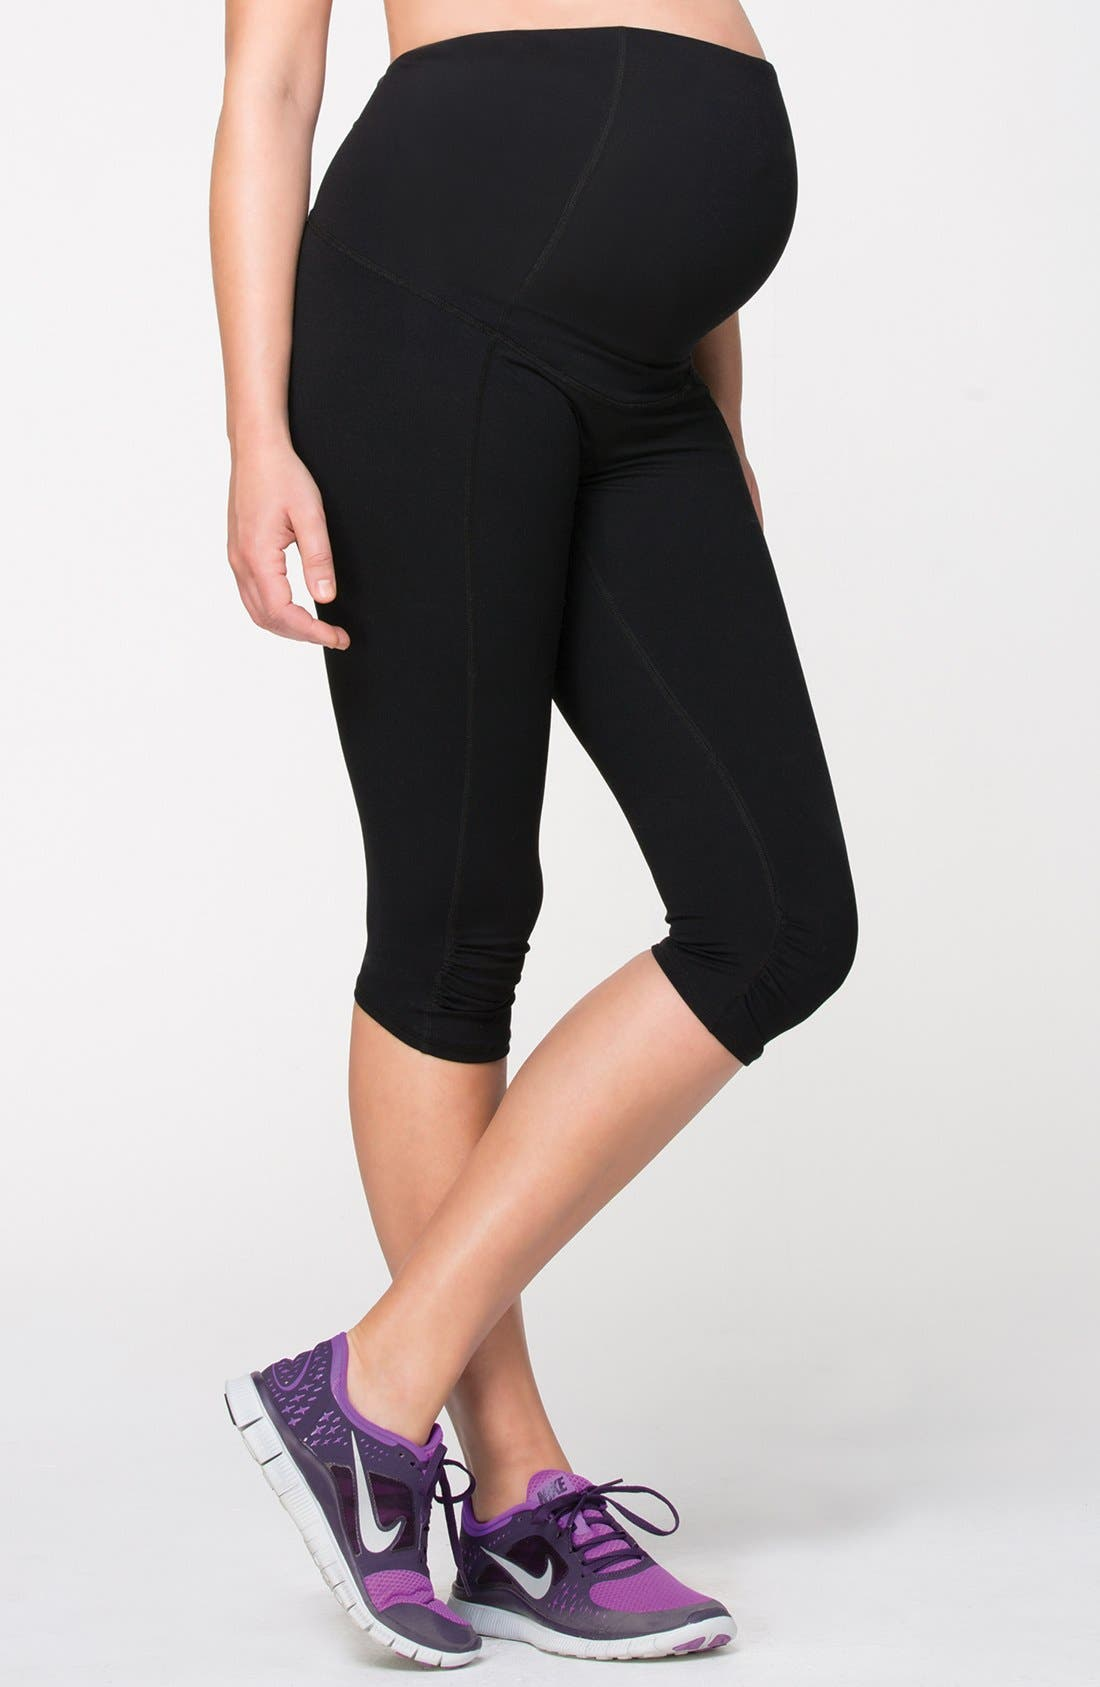 Ingrid & Isabel® Knee Length Active Maternity Pants with Crossover Panel